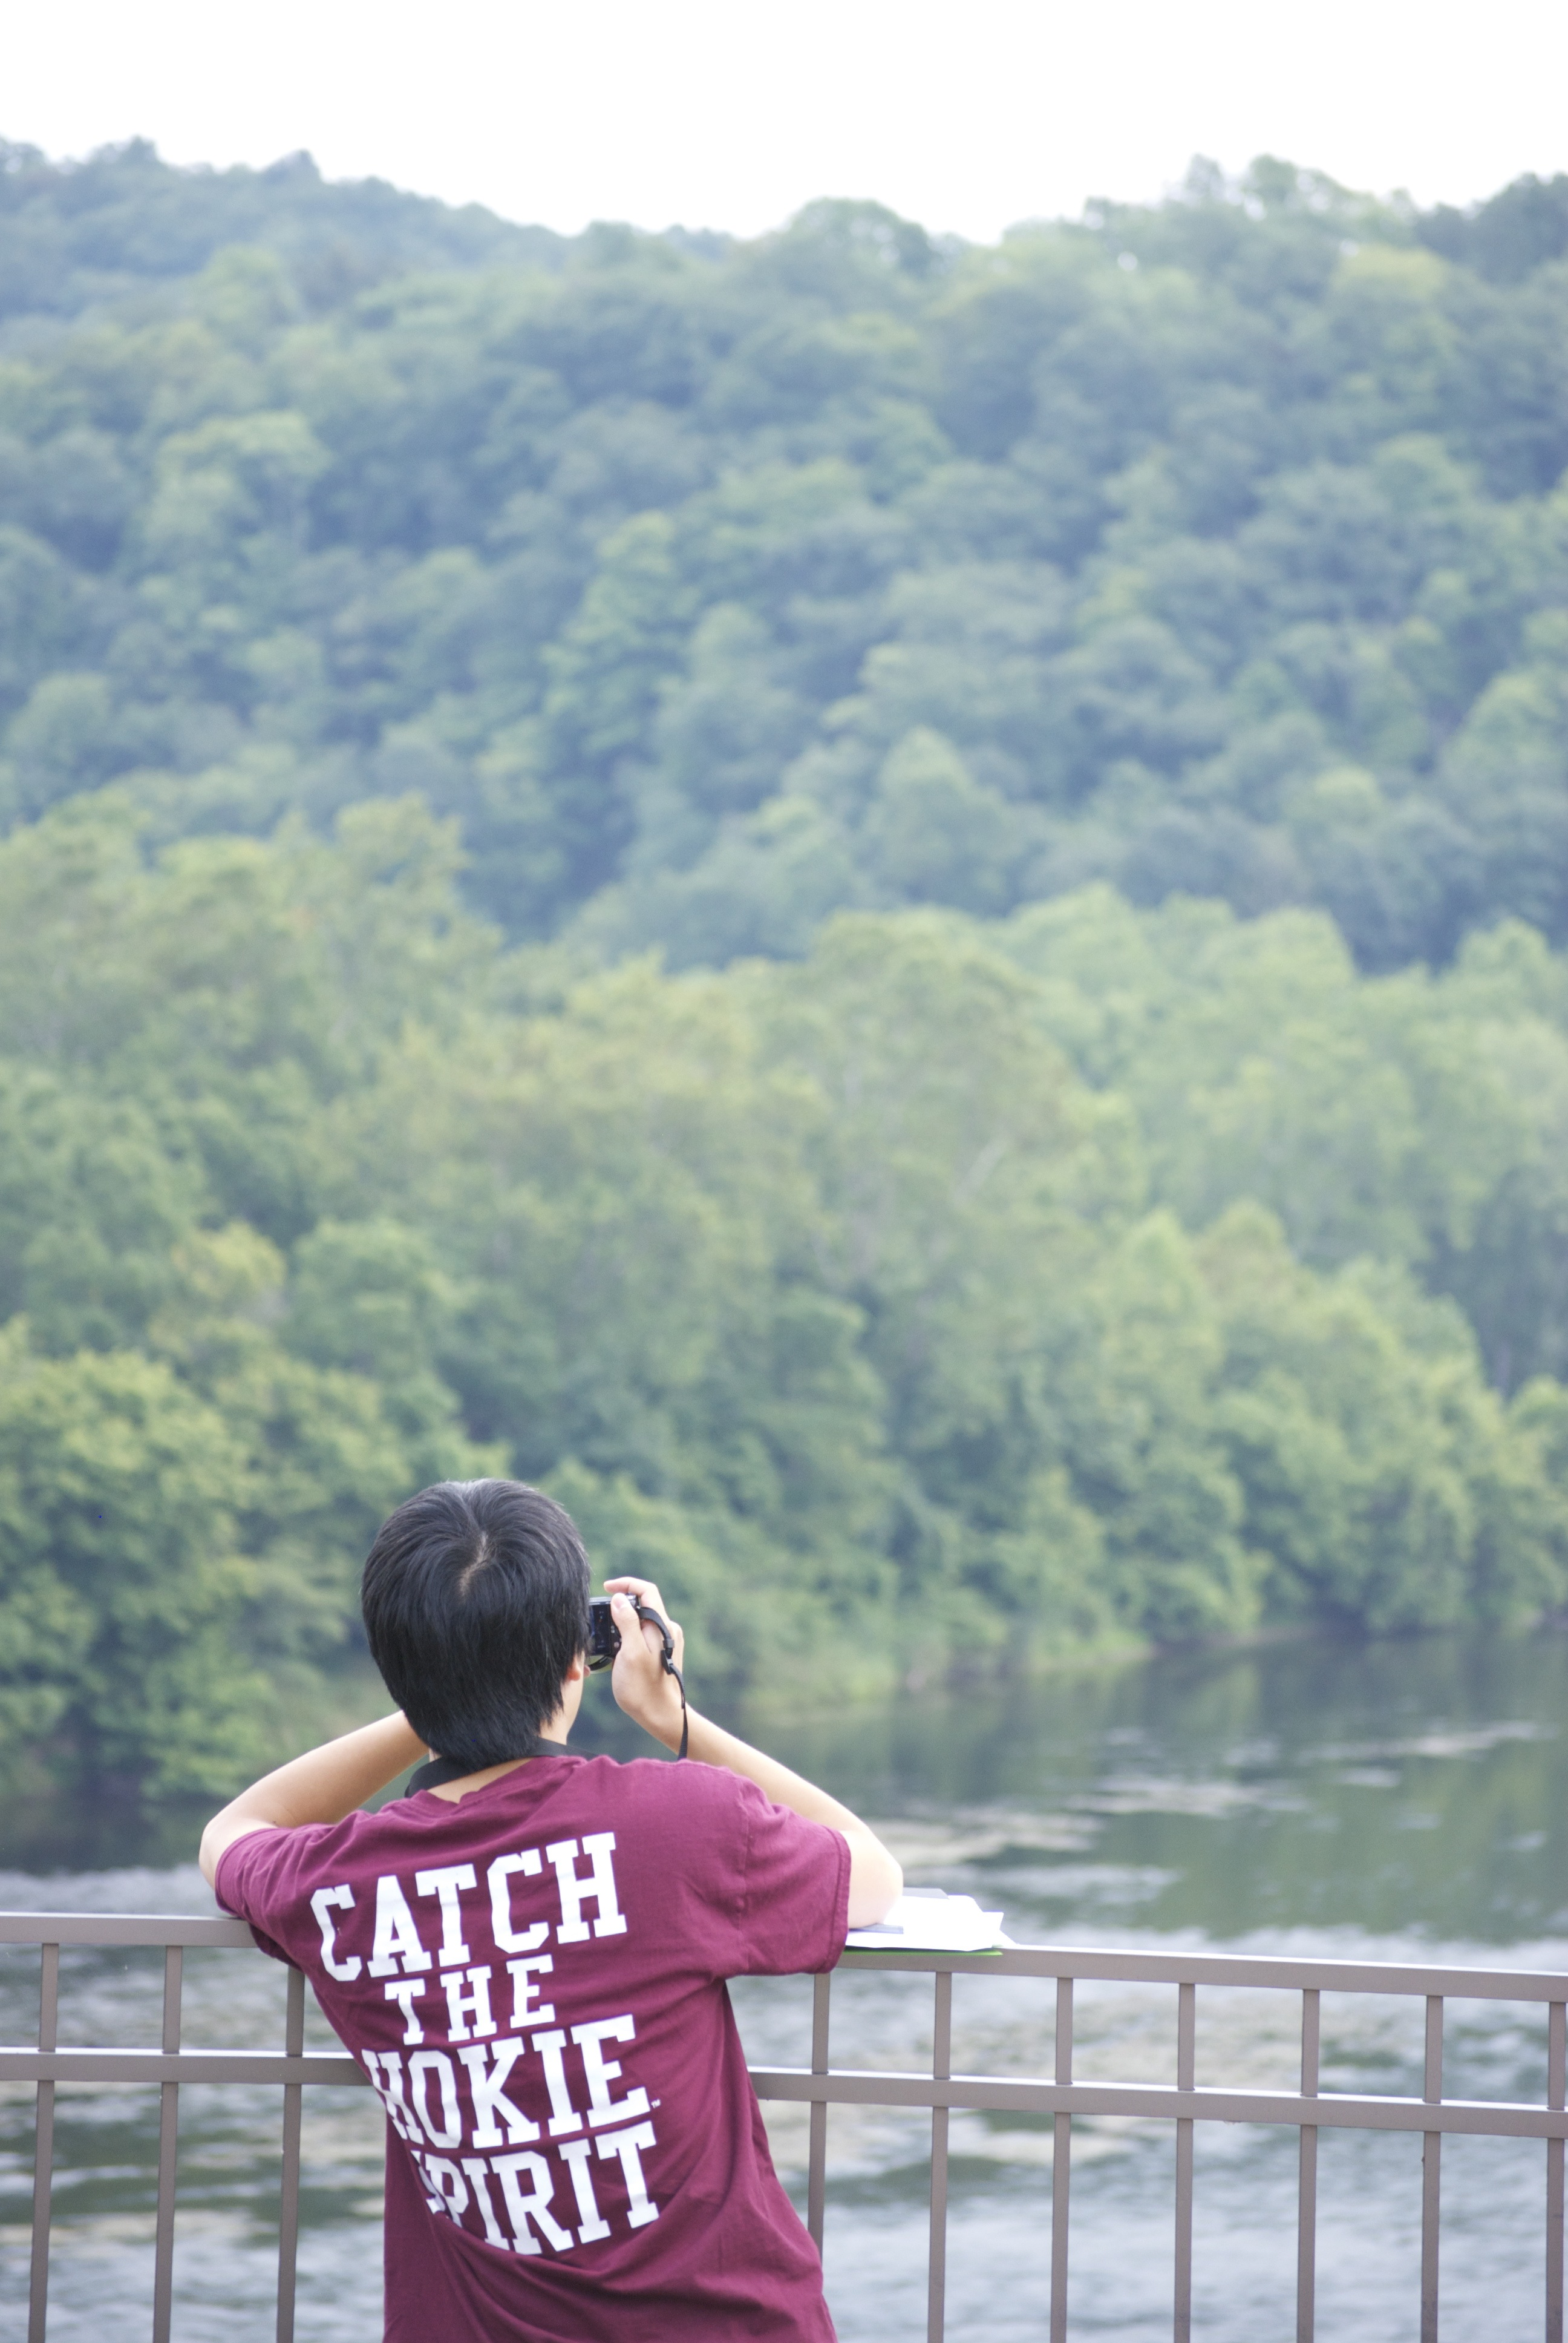 Student stands on a bridge overlooking a river and takes a picture